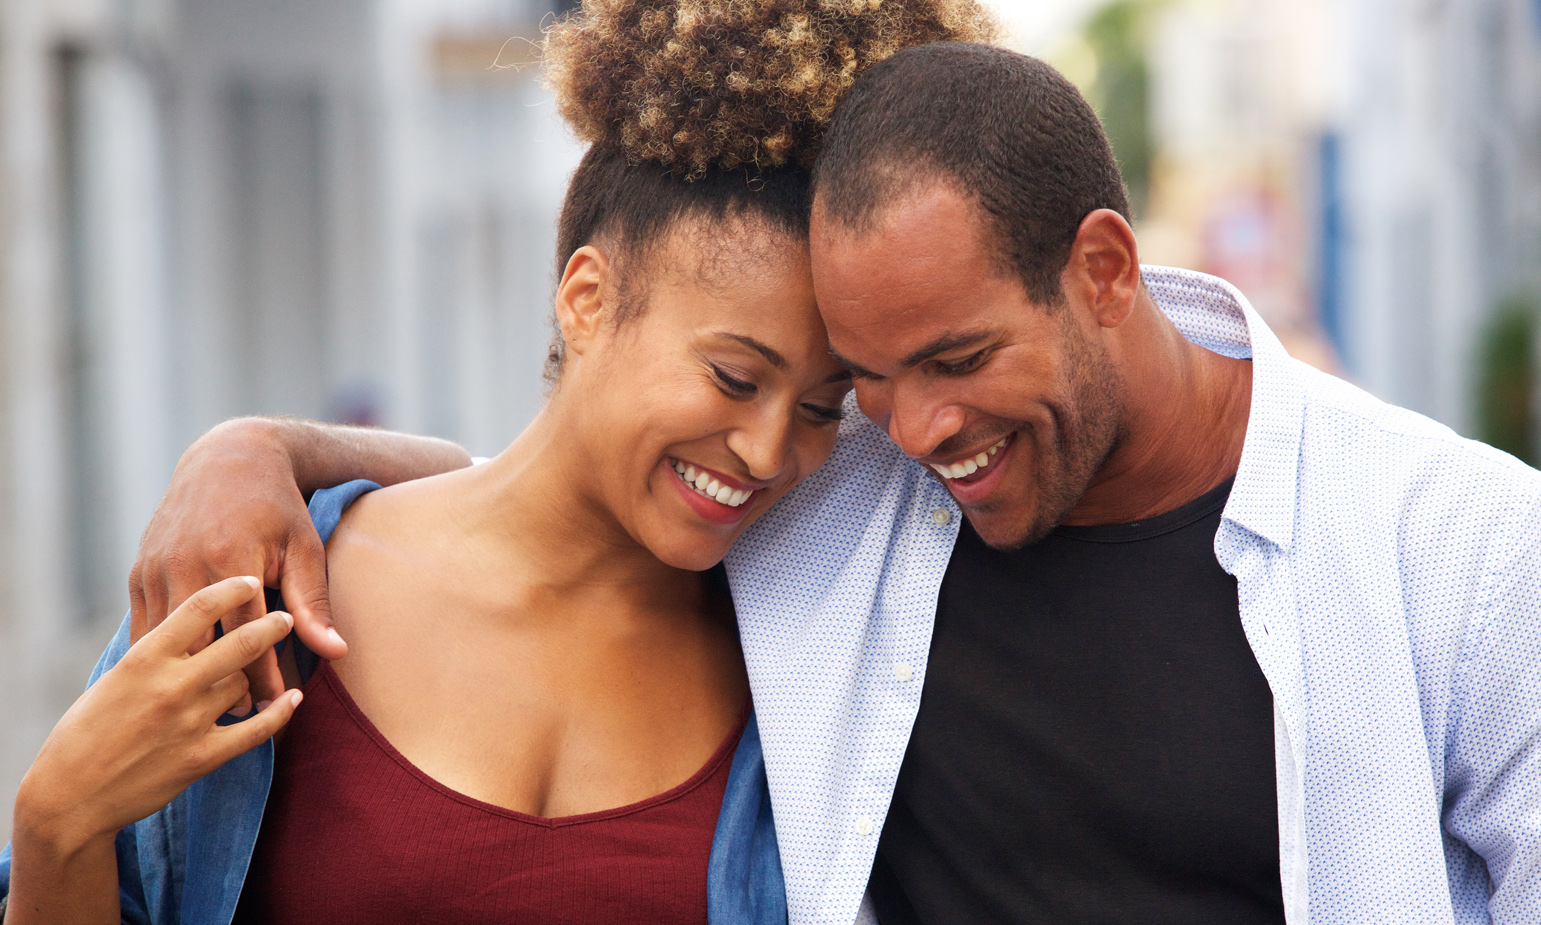 How The Coronavirus Could Change Dating Permanently